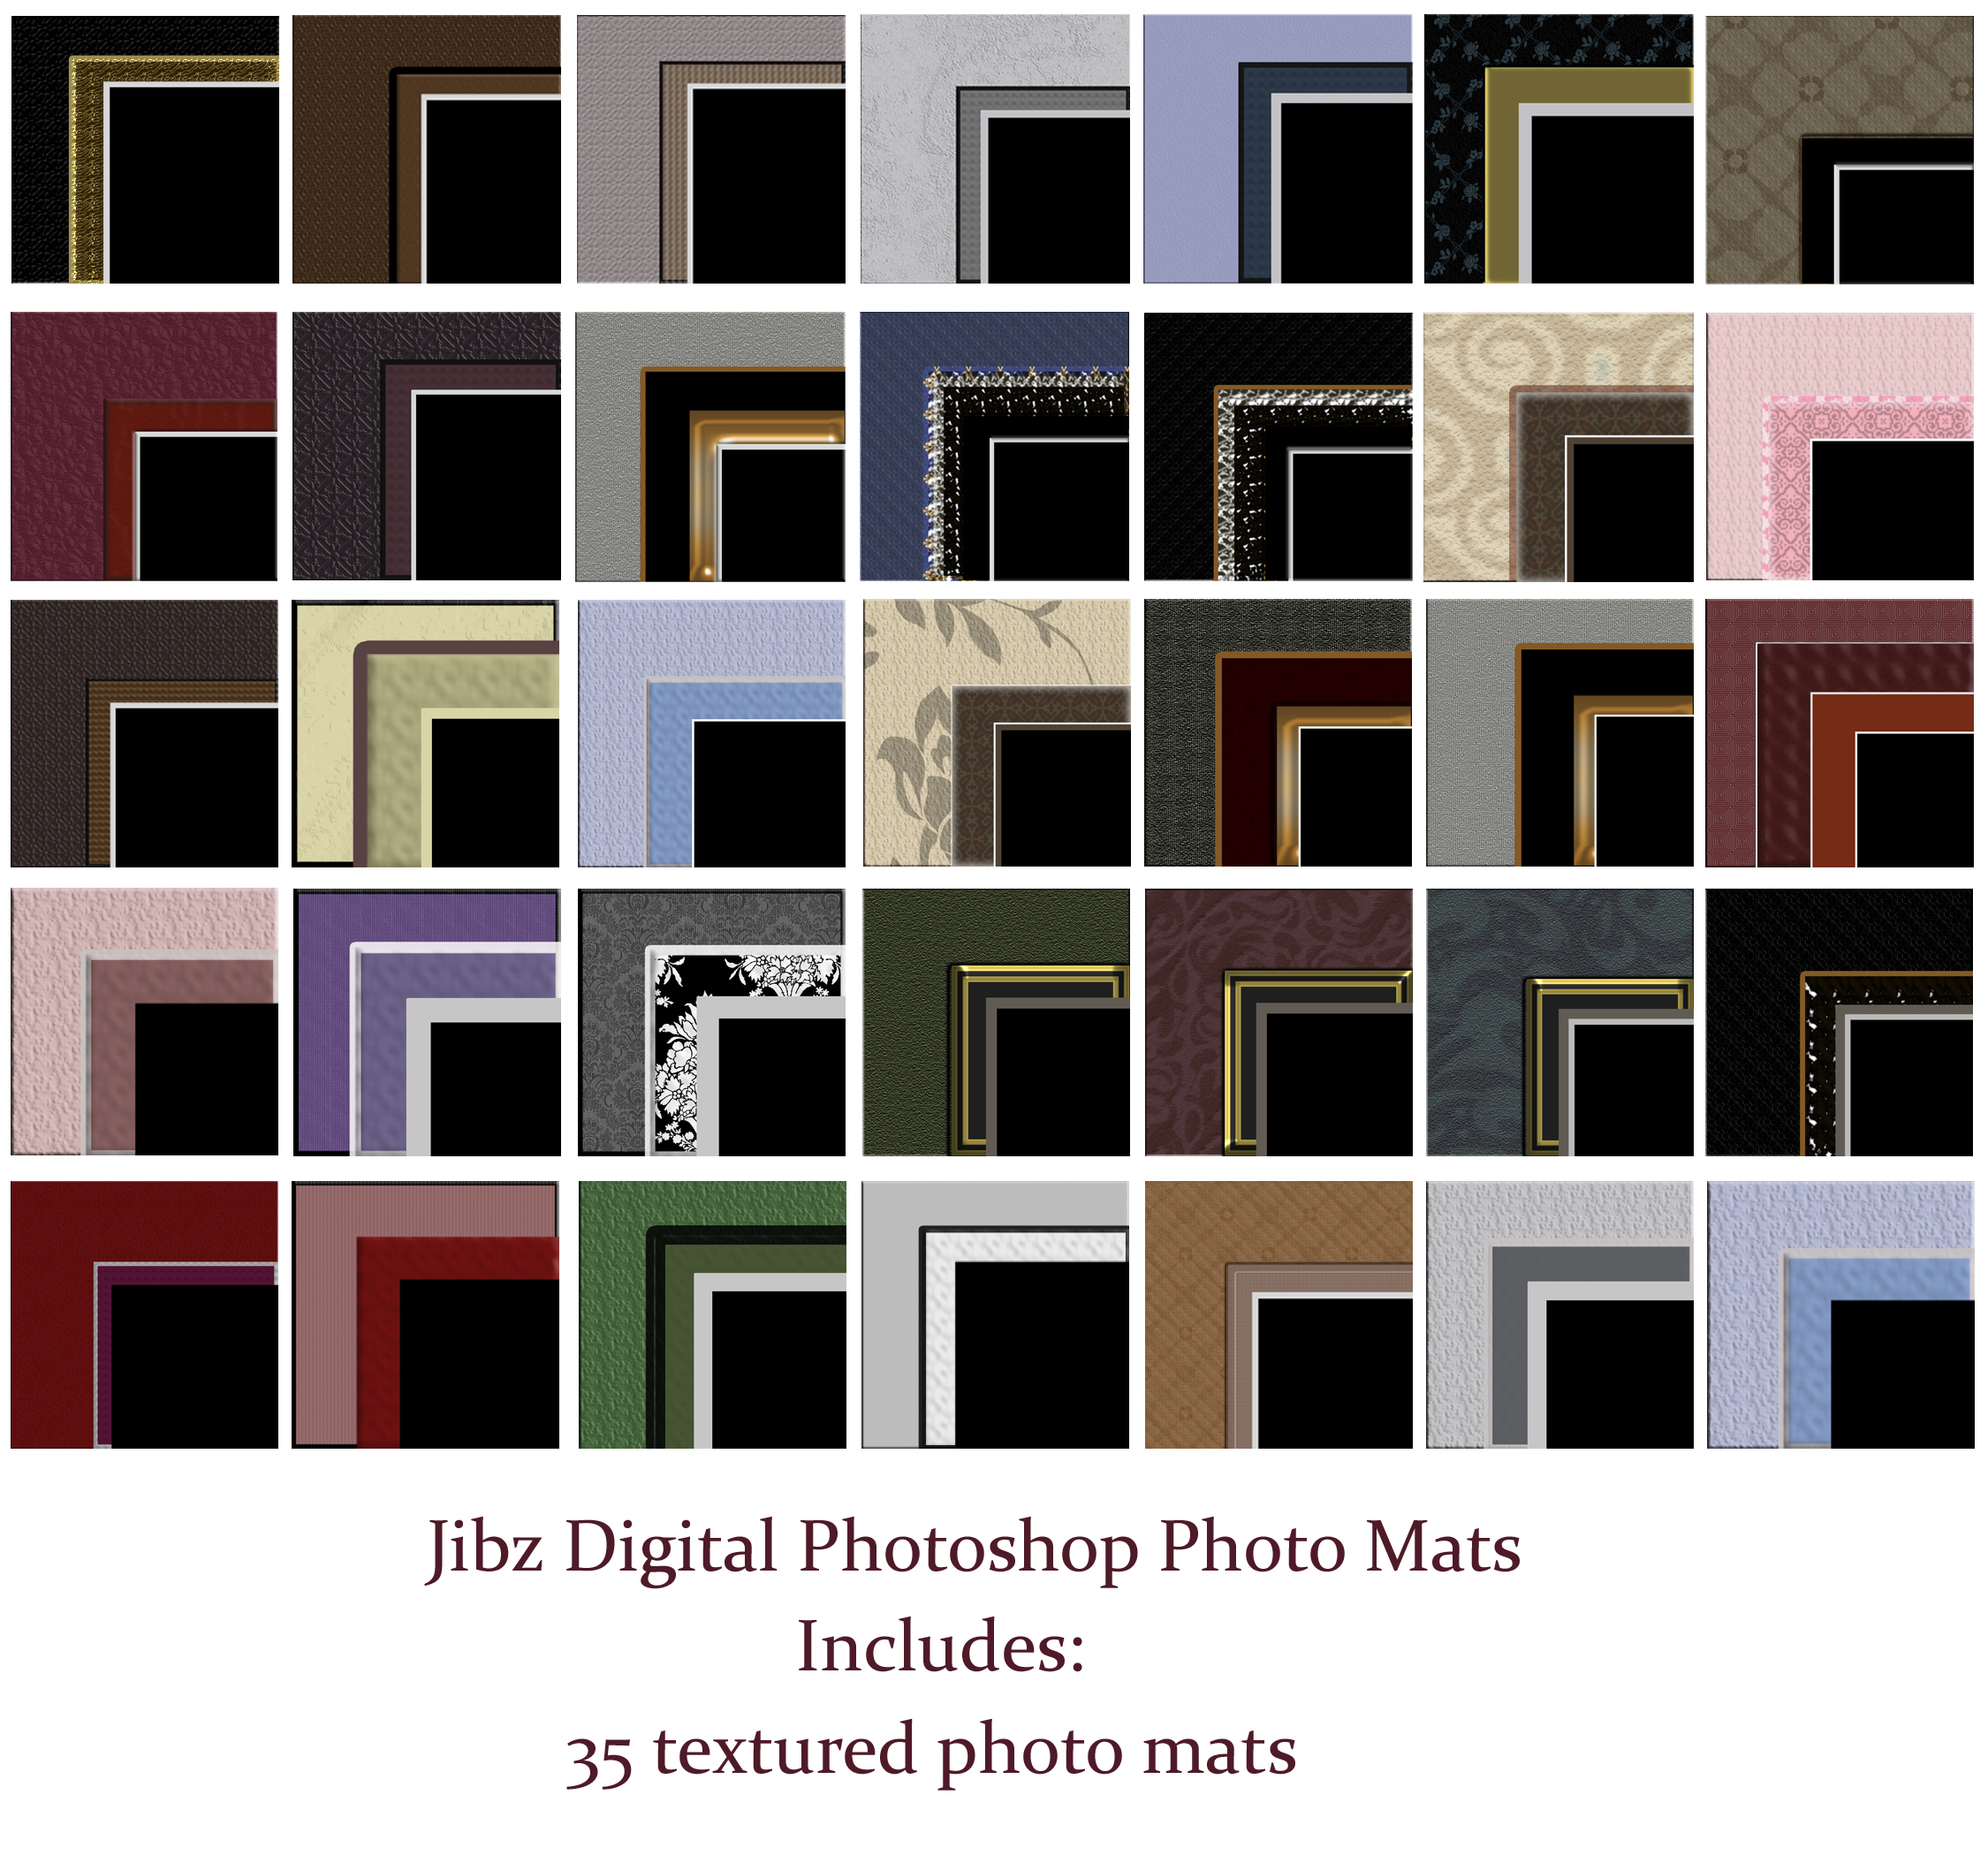 Photographers Photo Mats Photoshop Photo Mats Mat Board